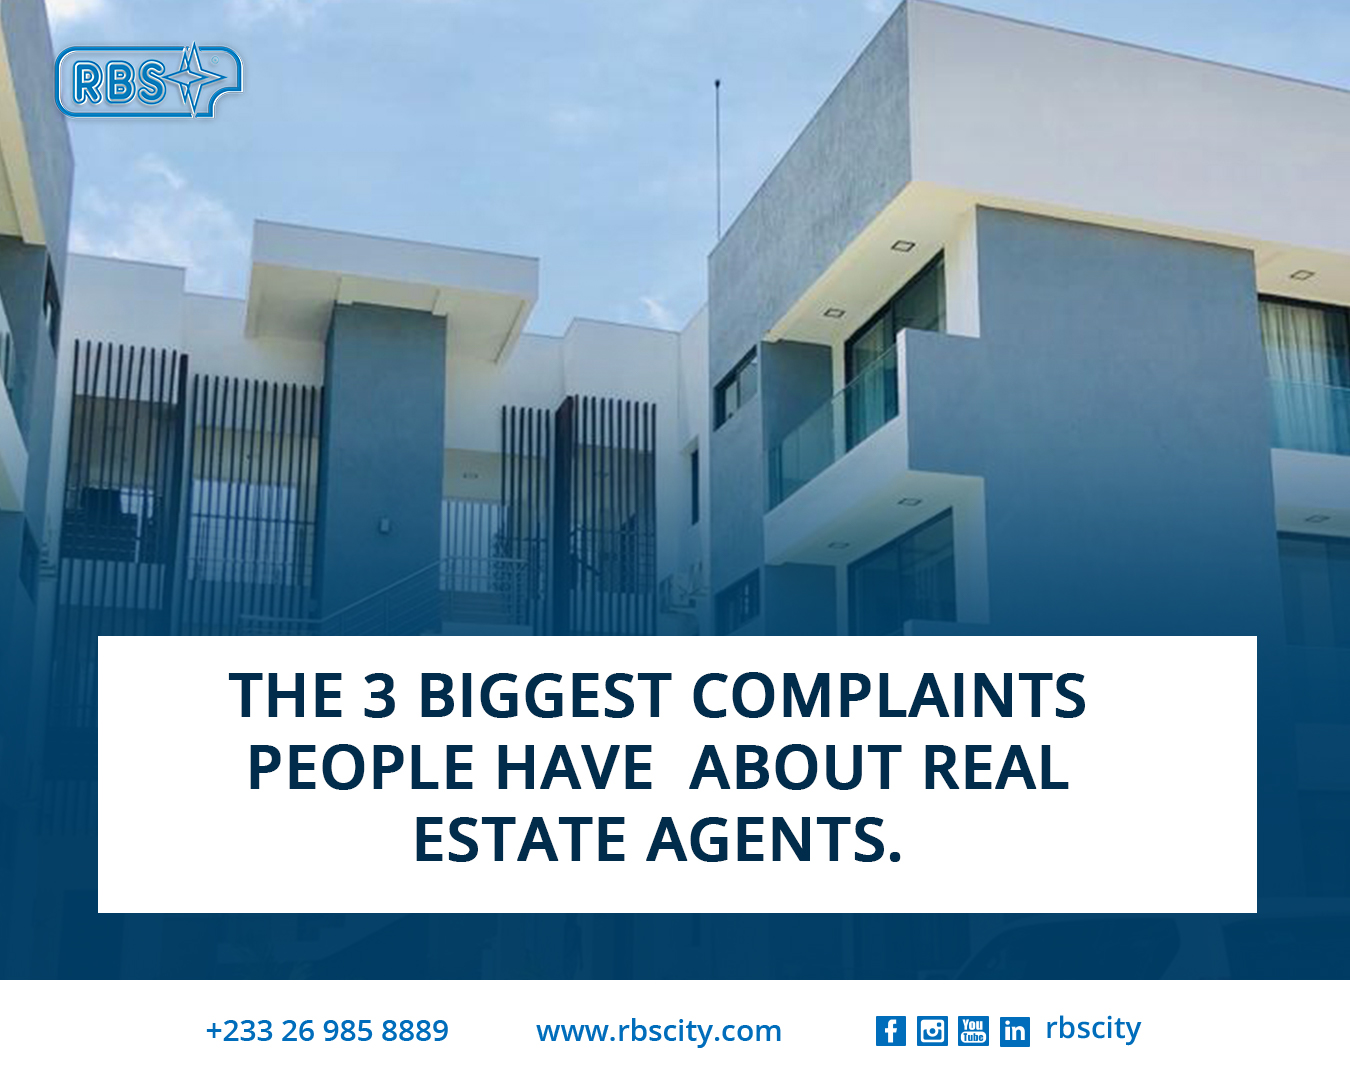 The 3 Biggest Complaints People Have About Real Estate Agents